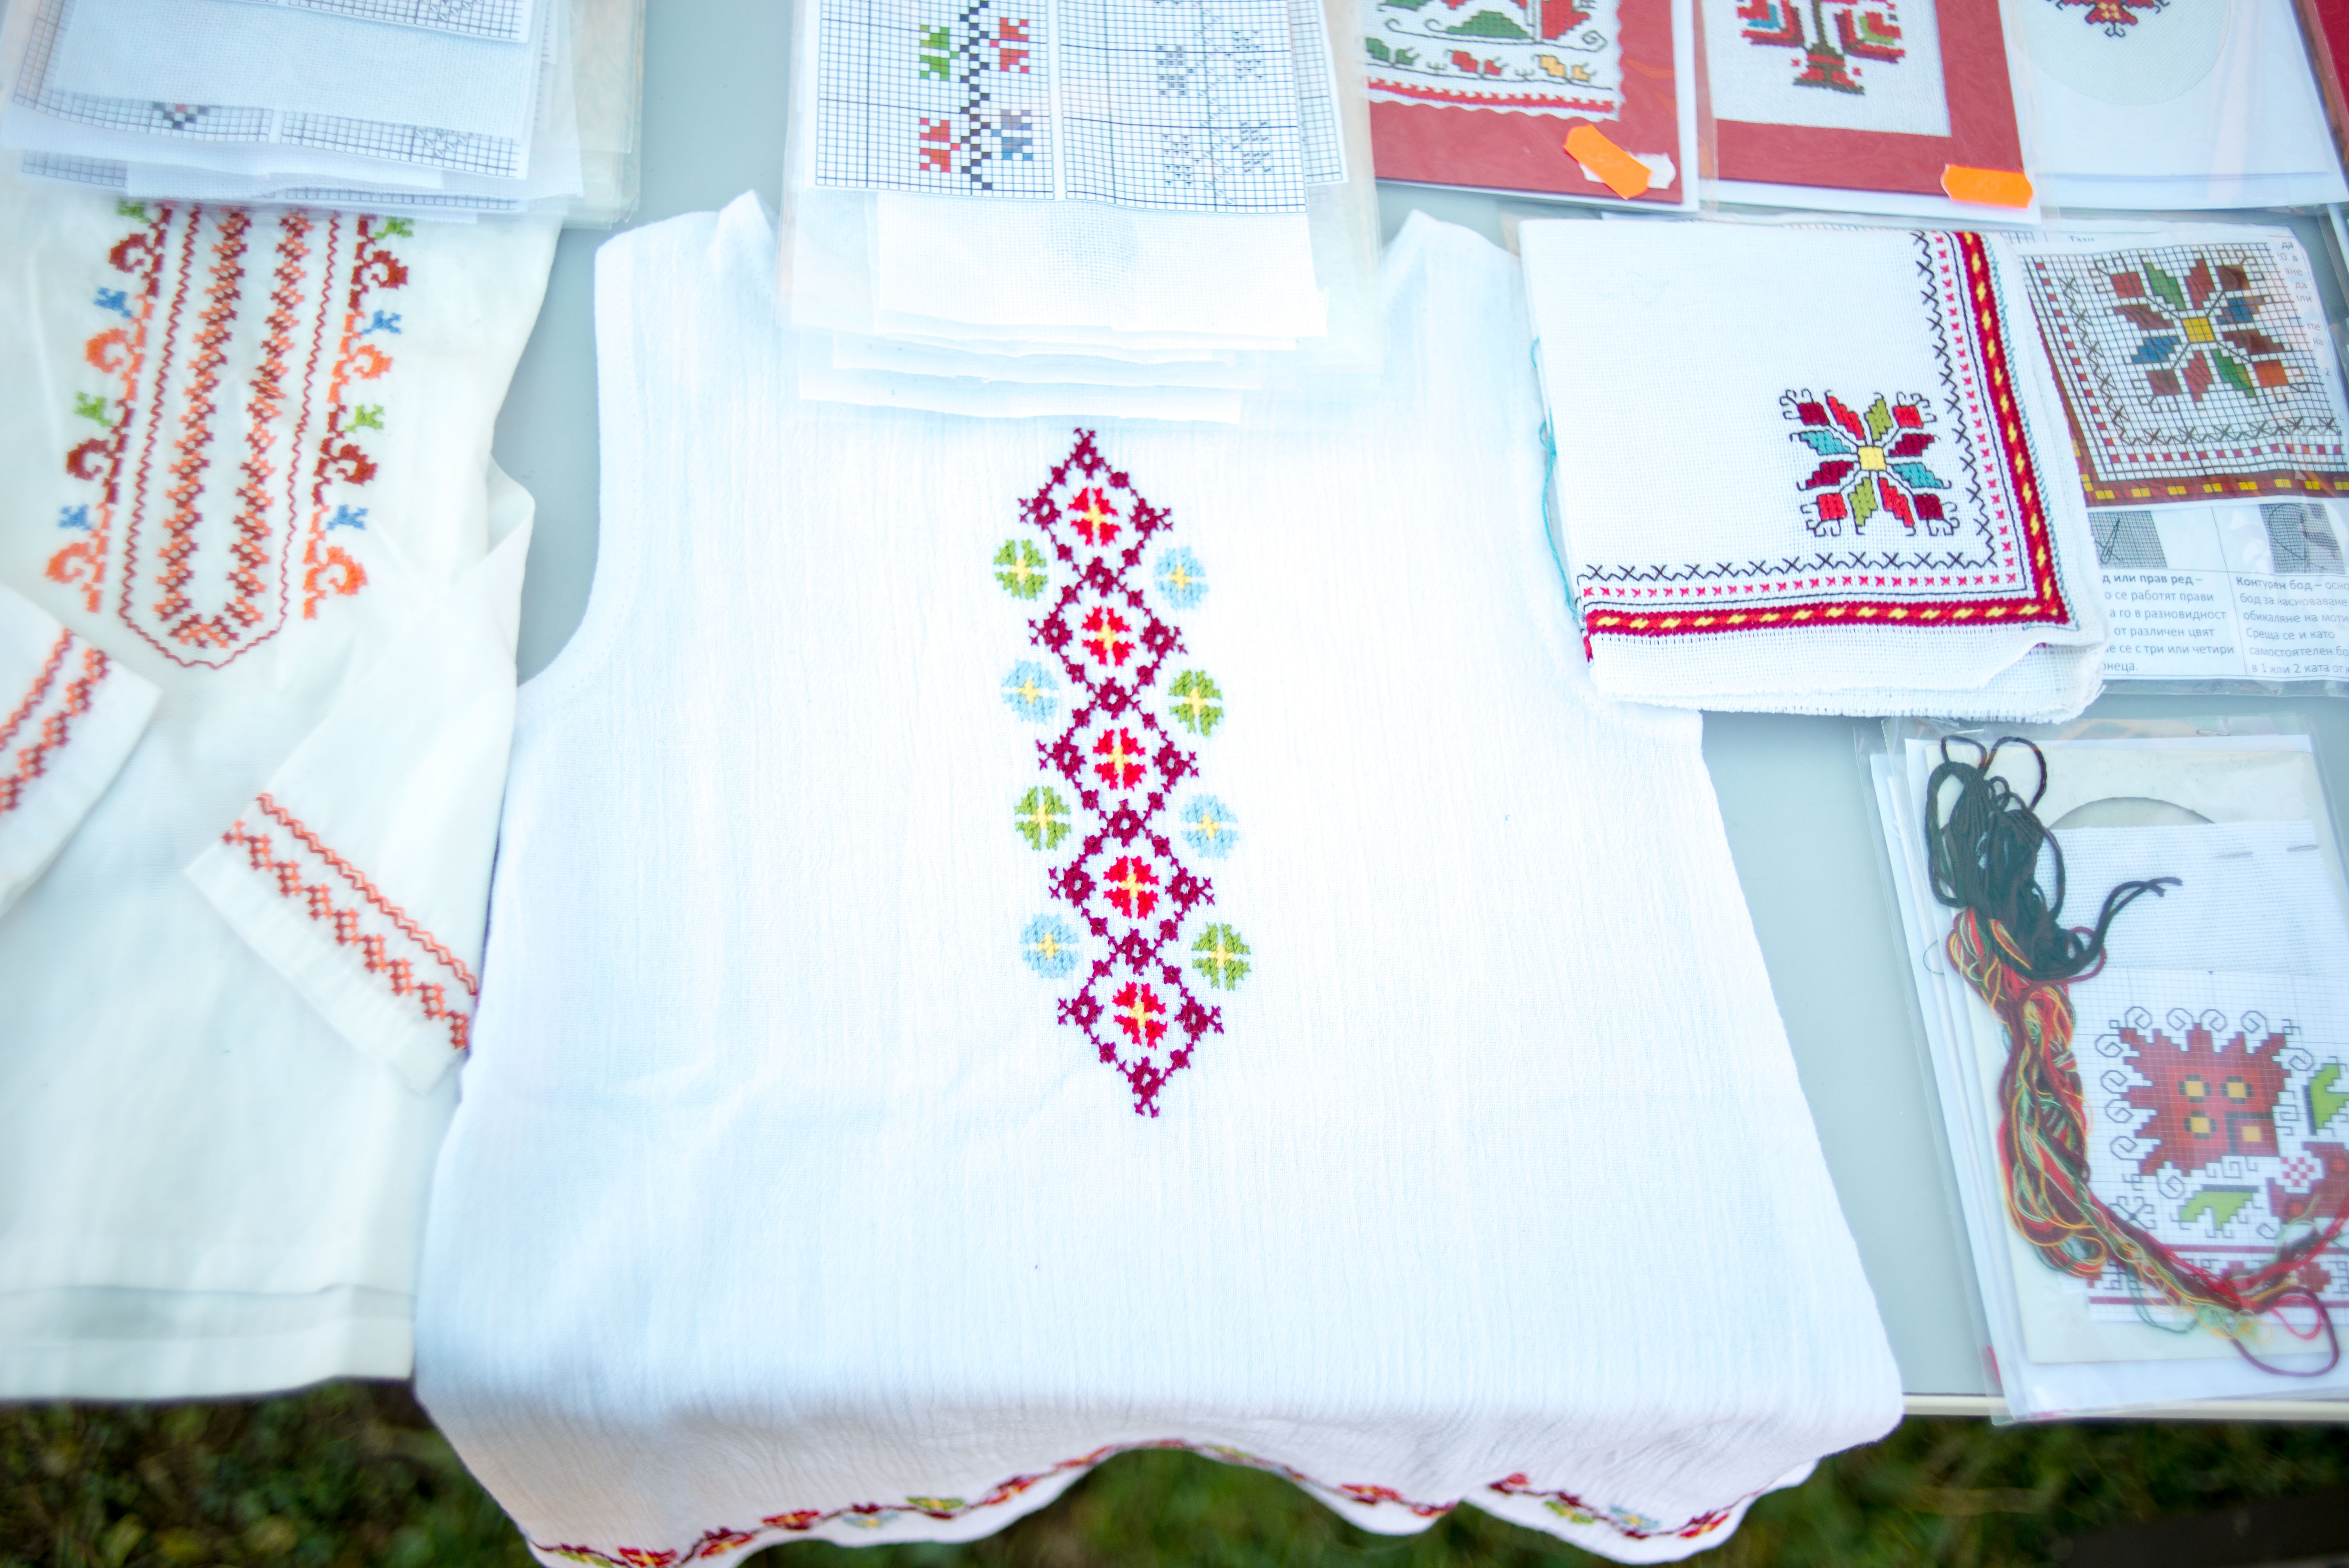 Traditional crafts fest in Koprivshtitsa, Bulgaria